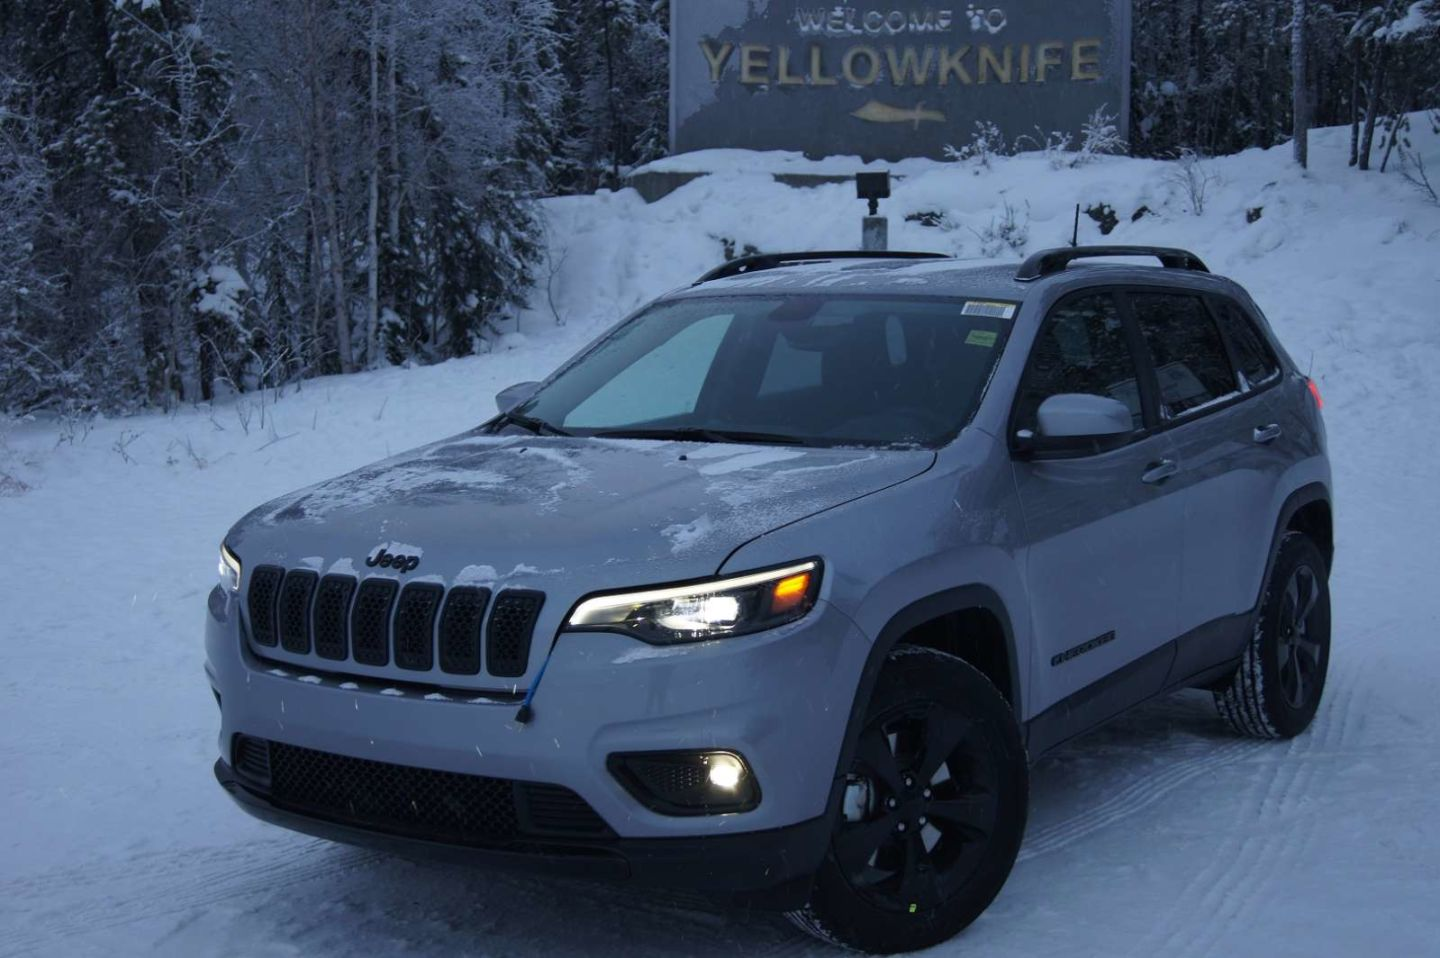 2019 Jeep Cherokee Altitude for sale in Yellowknife, Northwest Territories